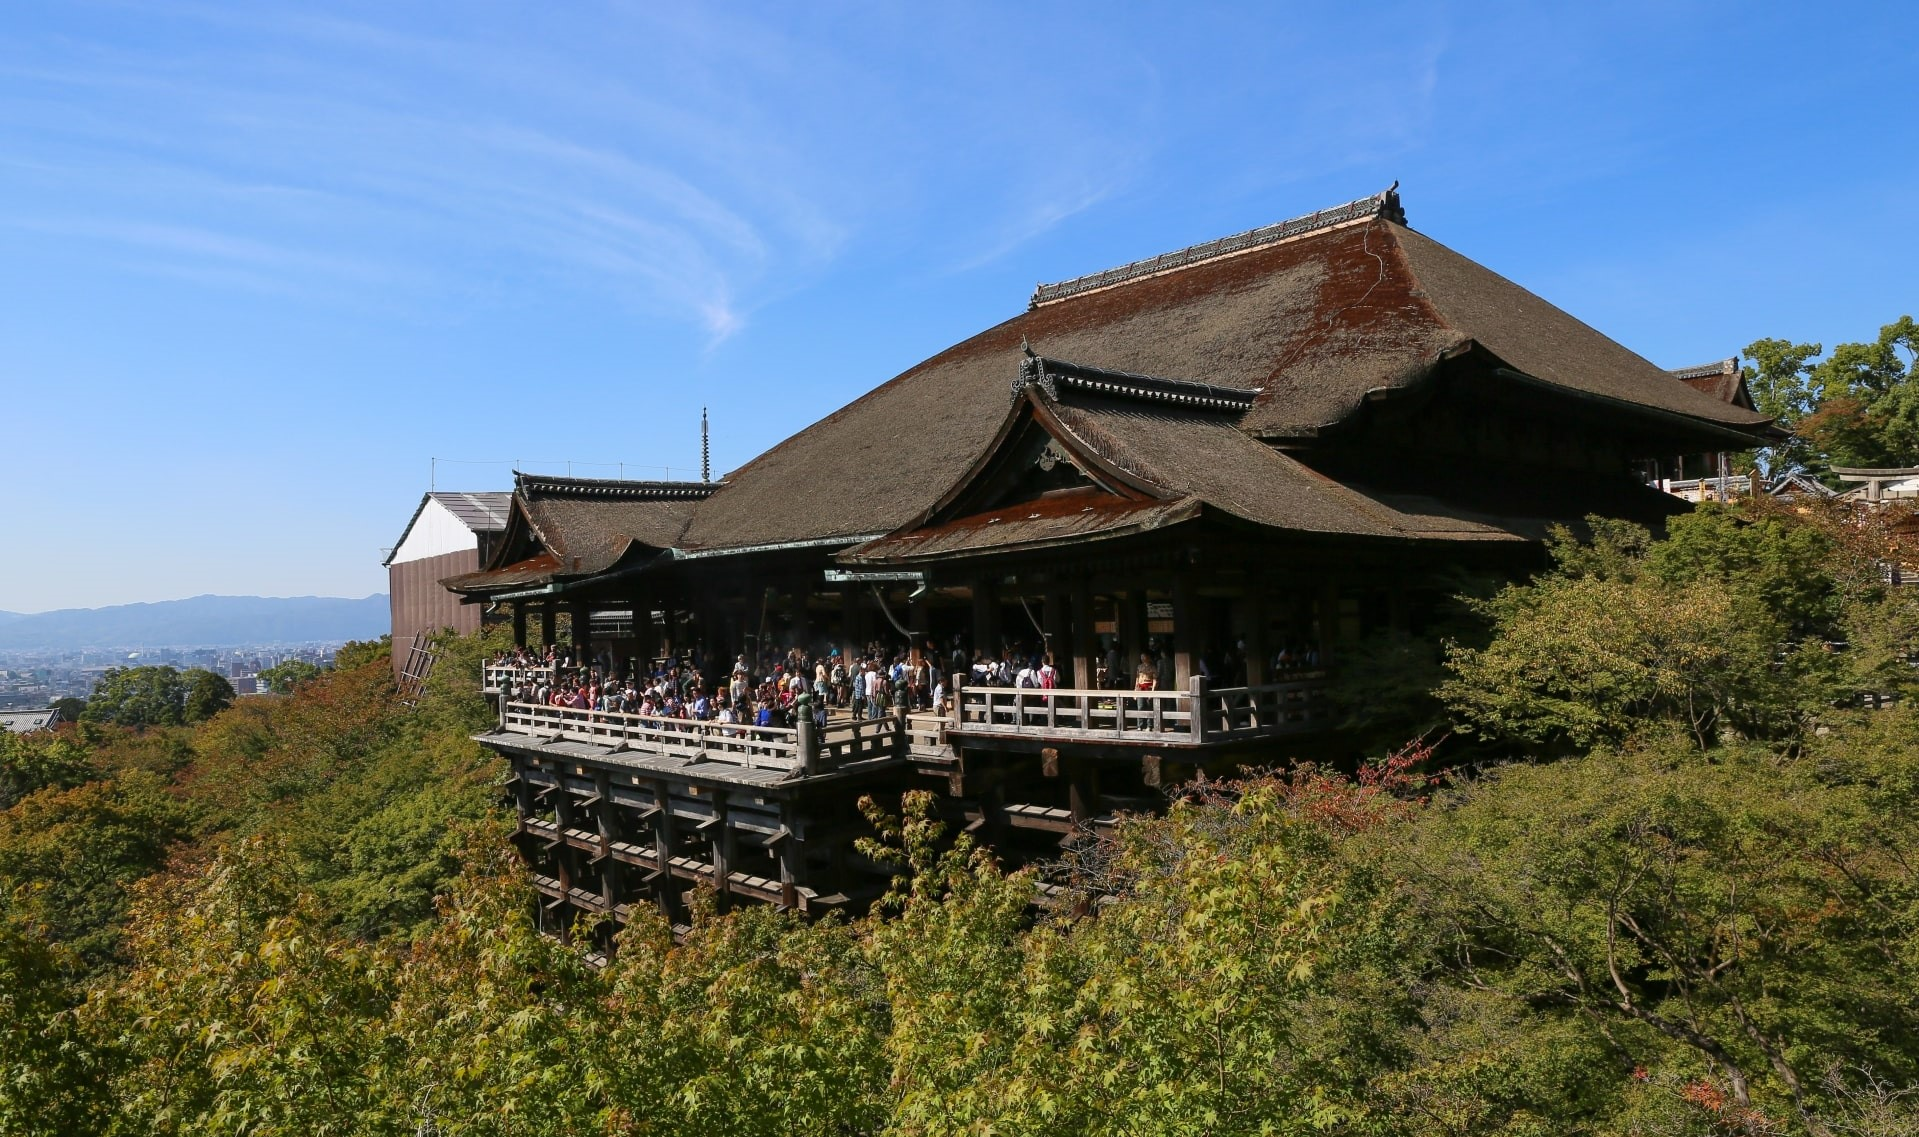 The large wooden terrace of Kiyomizudera Temple